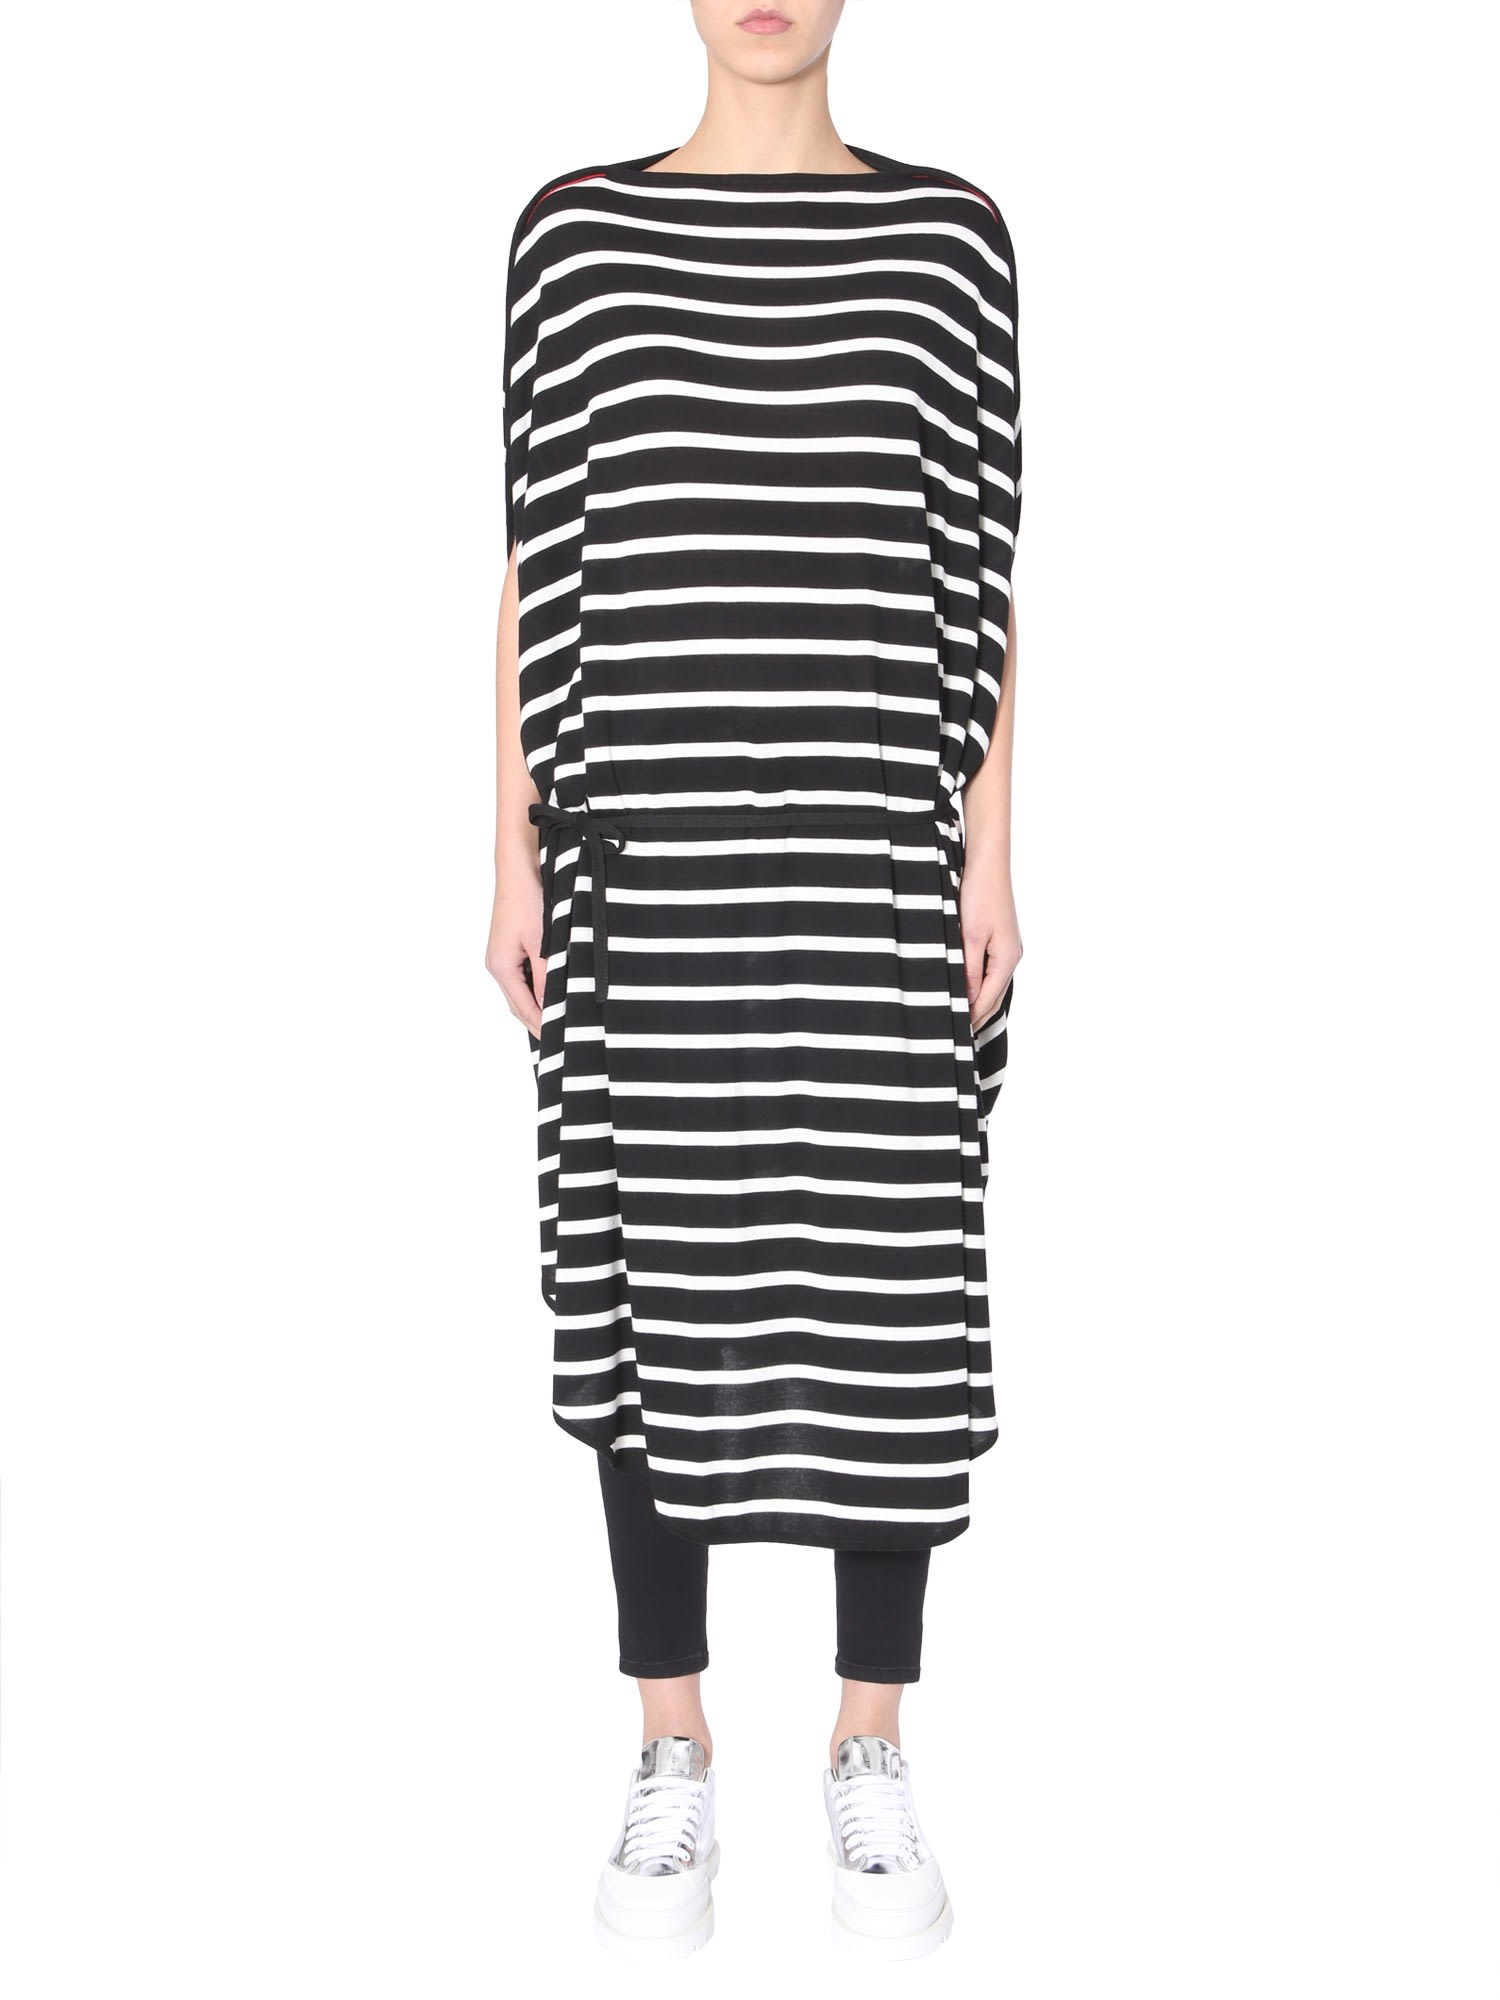 MM6 Maison Margiela Striped Midi Dress